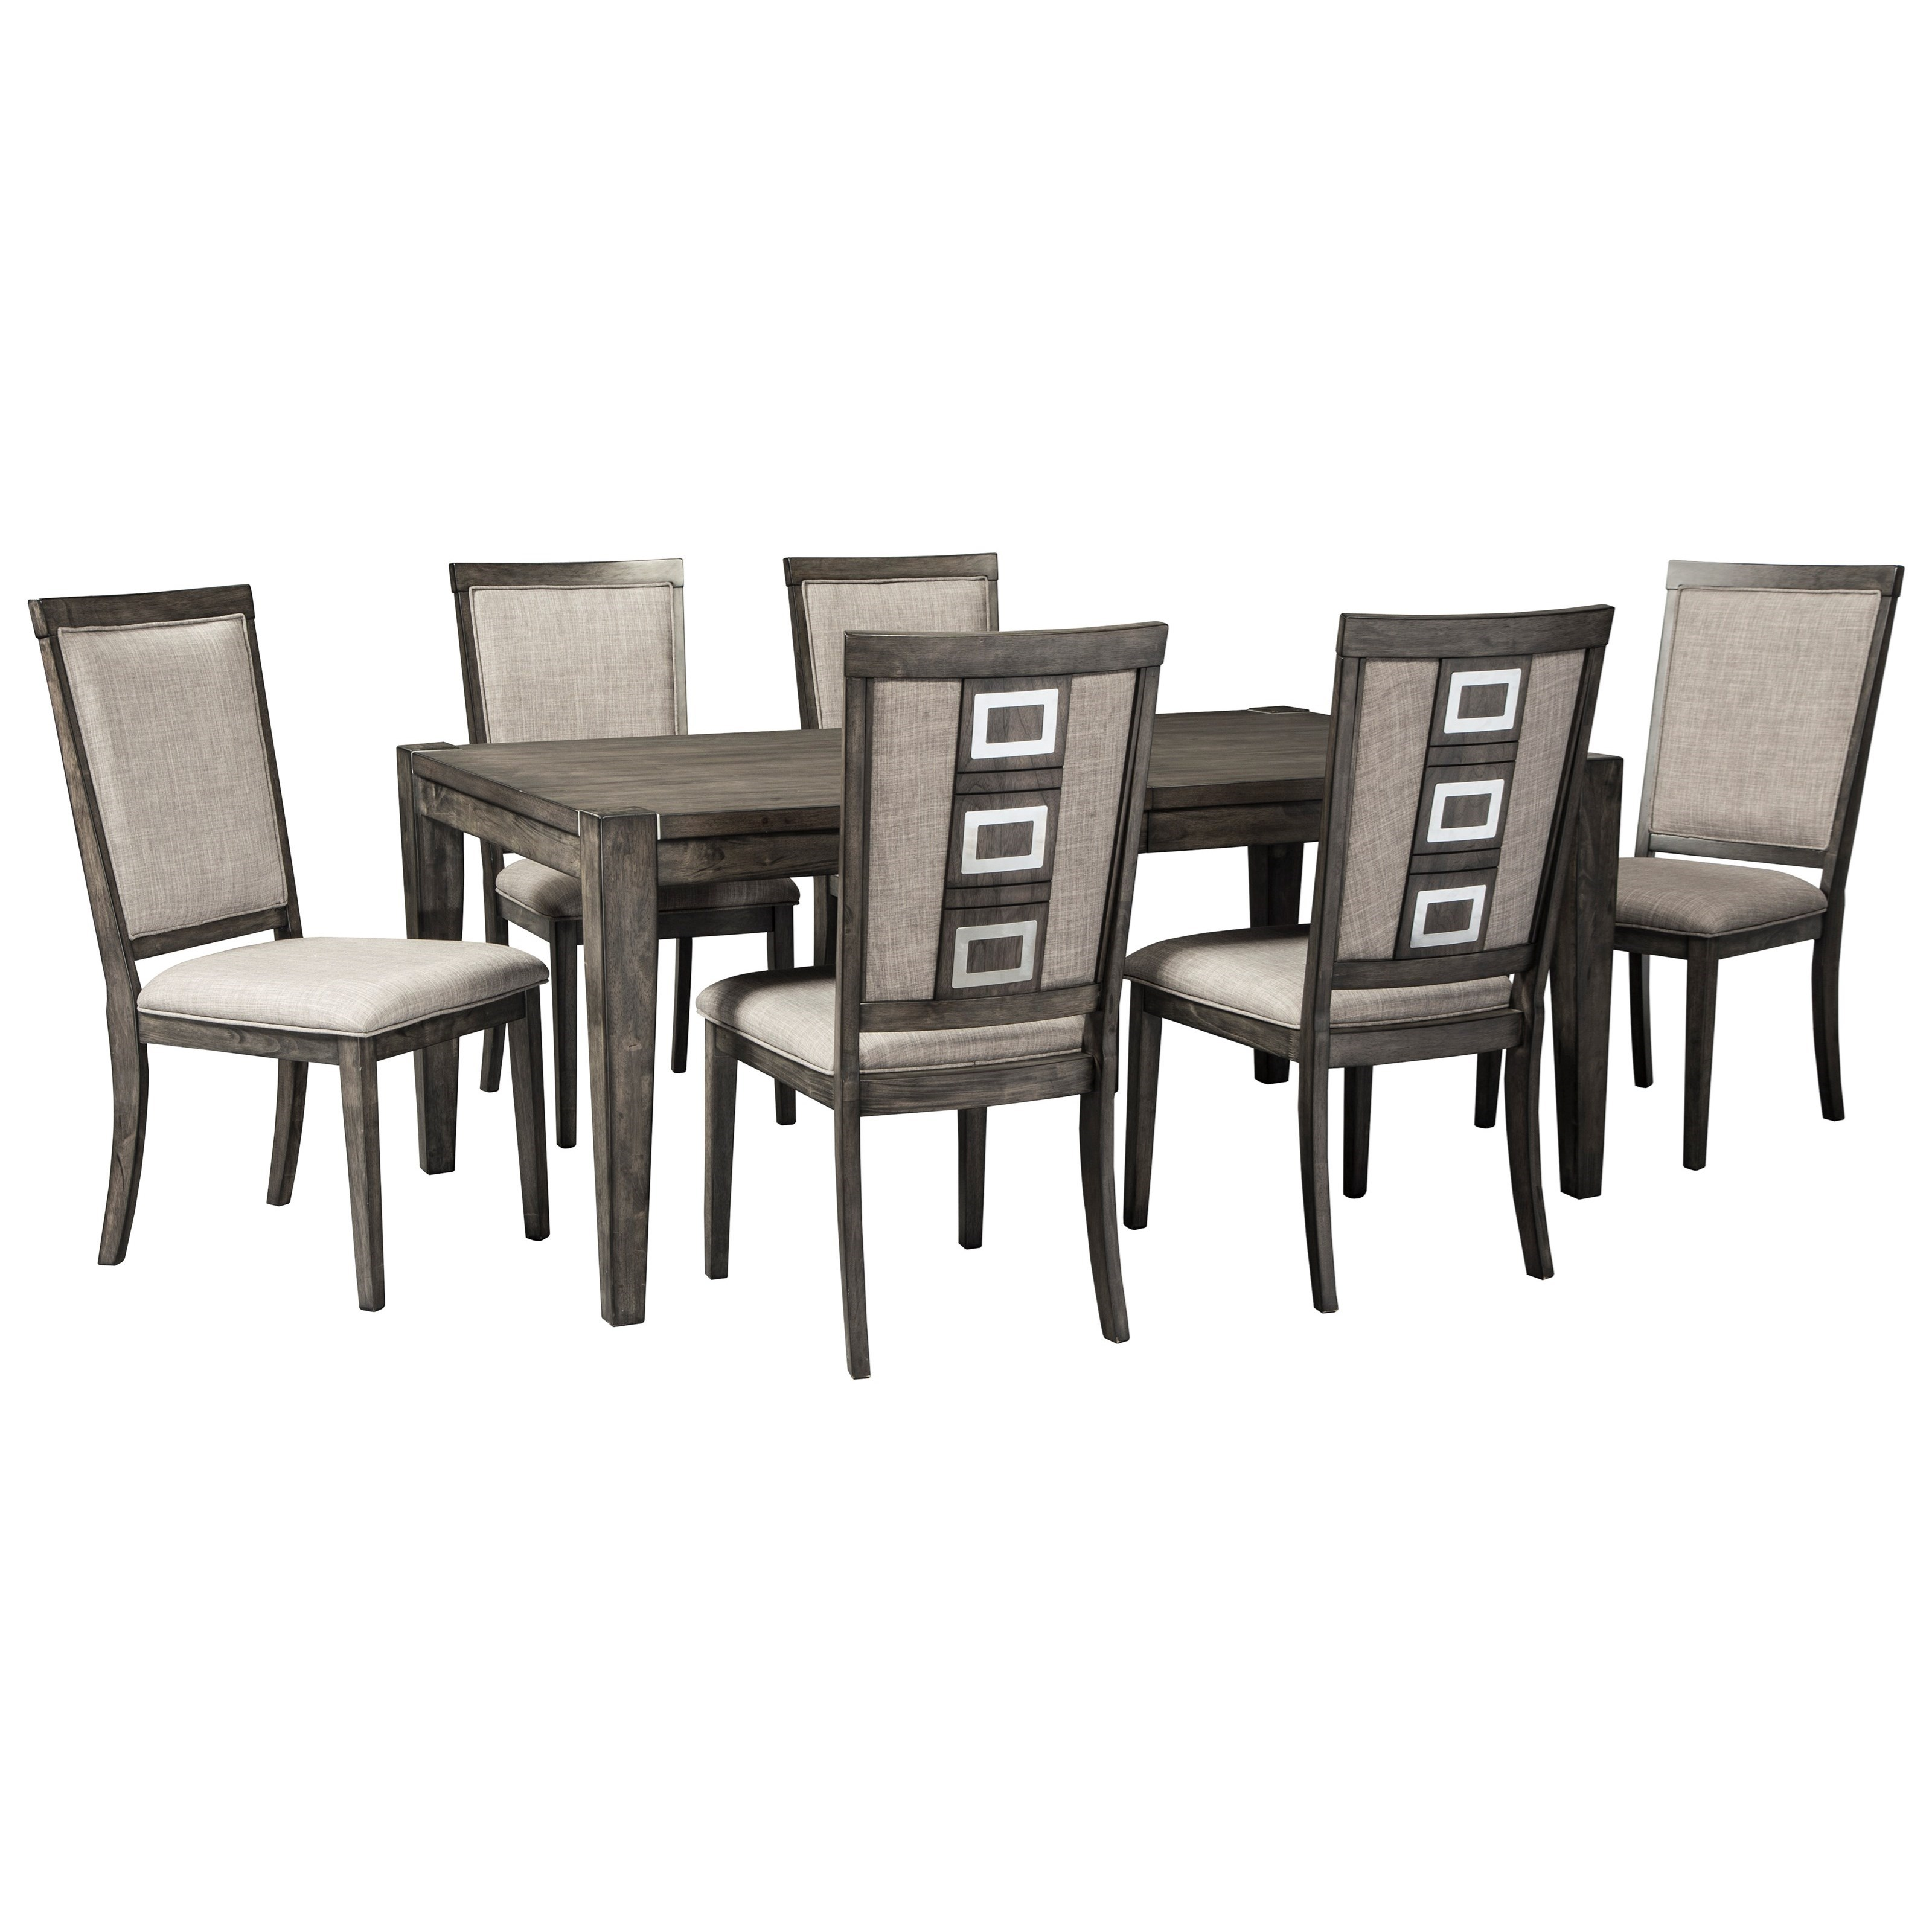 Signature design by ashley chadoni 7 piece contemporary for Table 6 kitchen and bar canton ohio